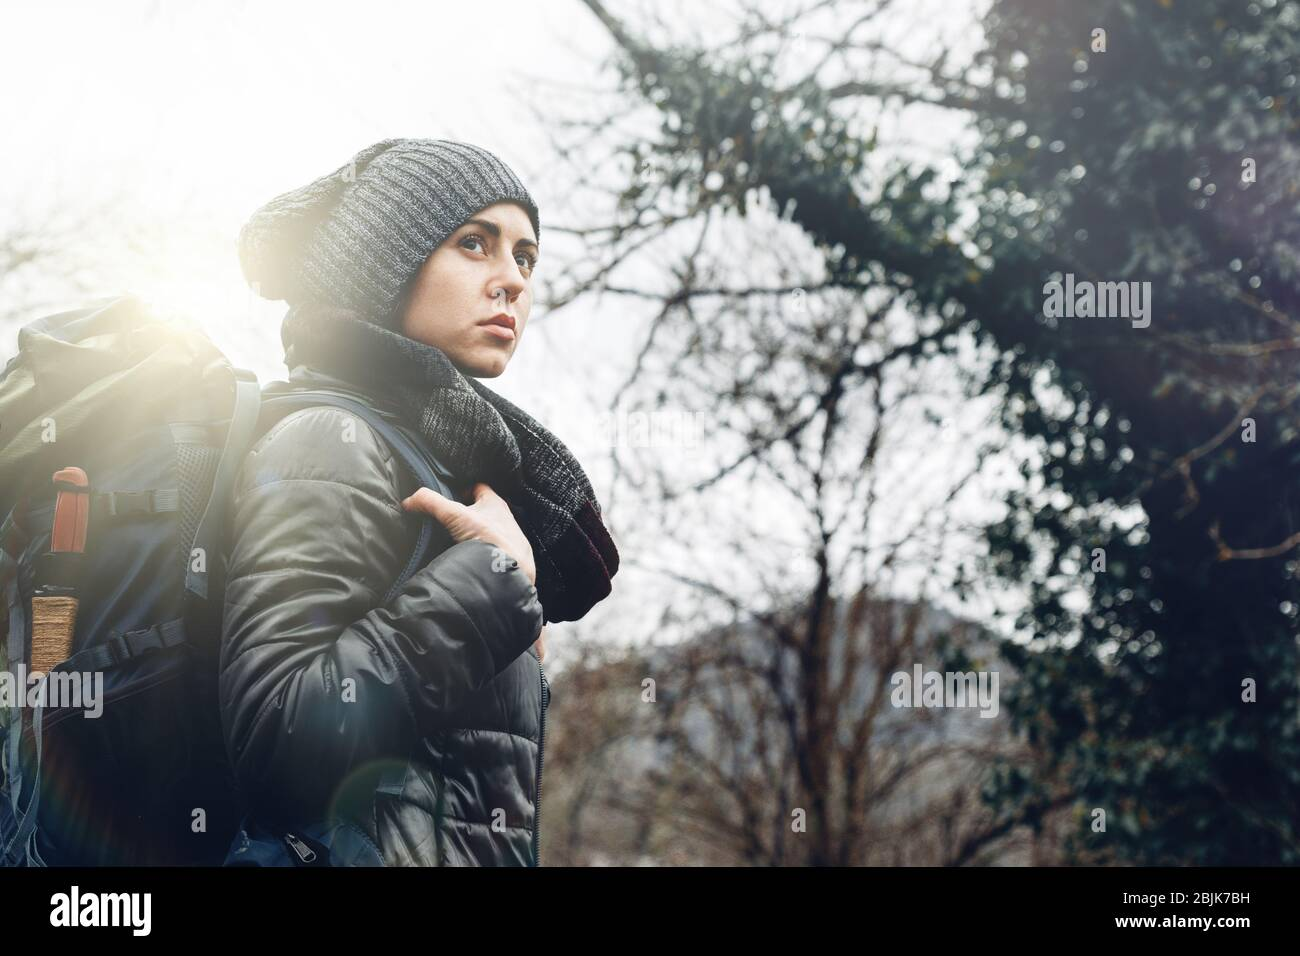 Young woman with backpack in forest. Concept Travel Tourism Adventure Hike and People Stock Photo